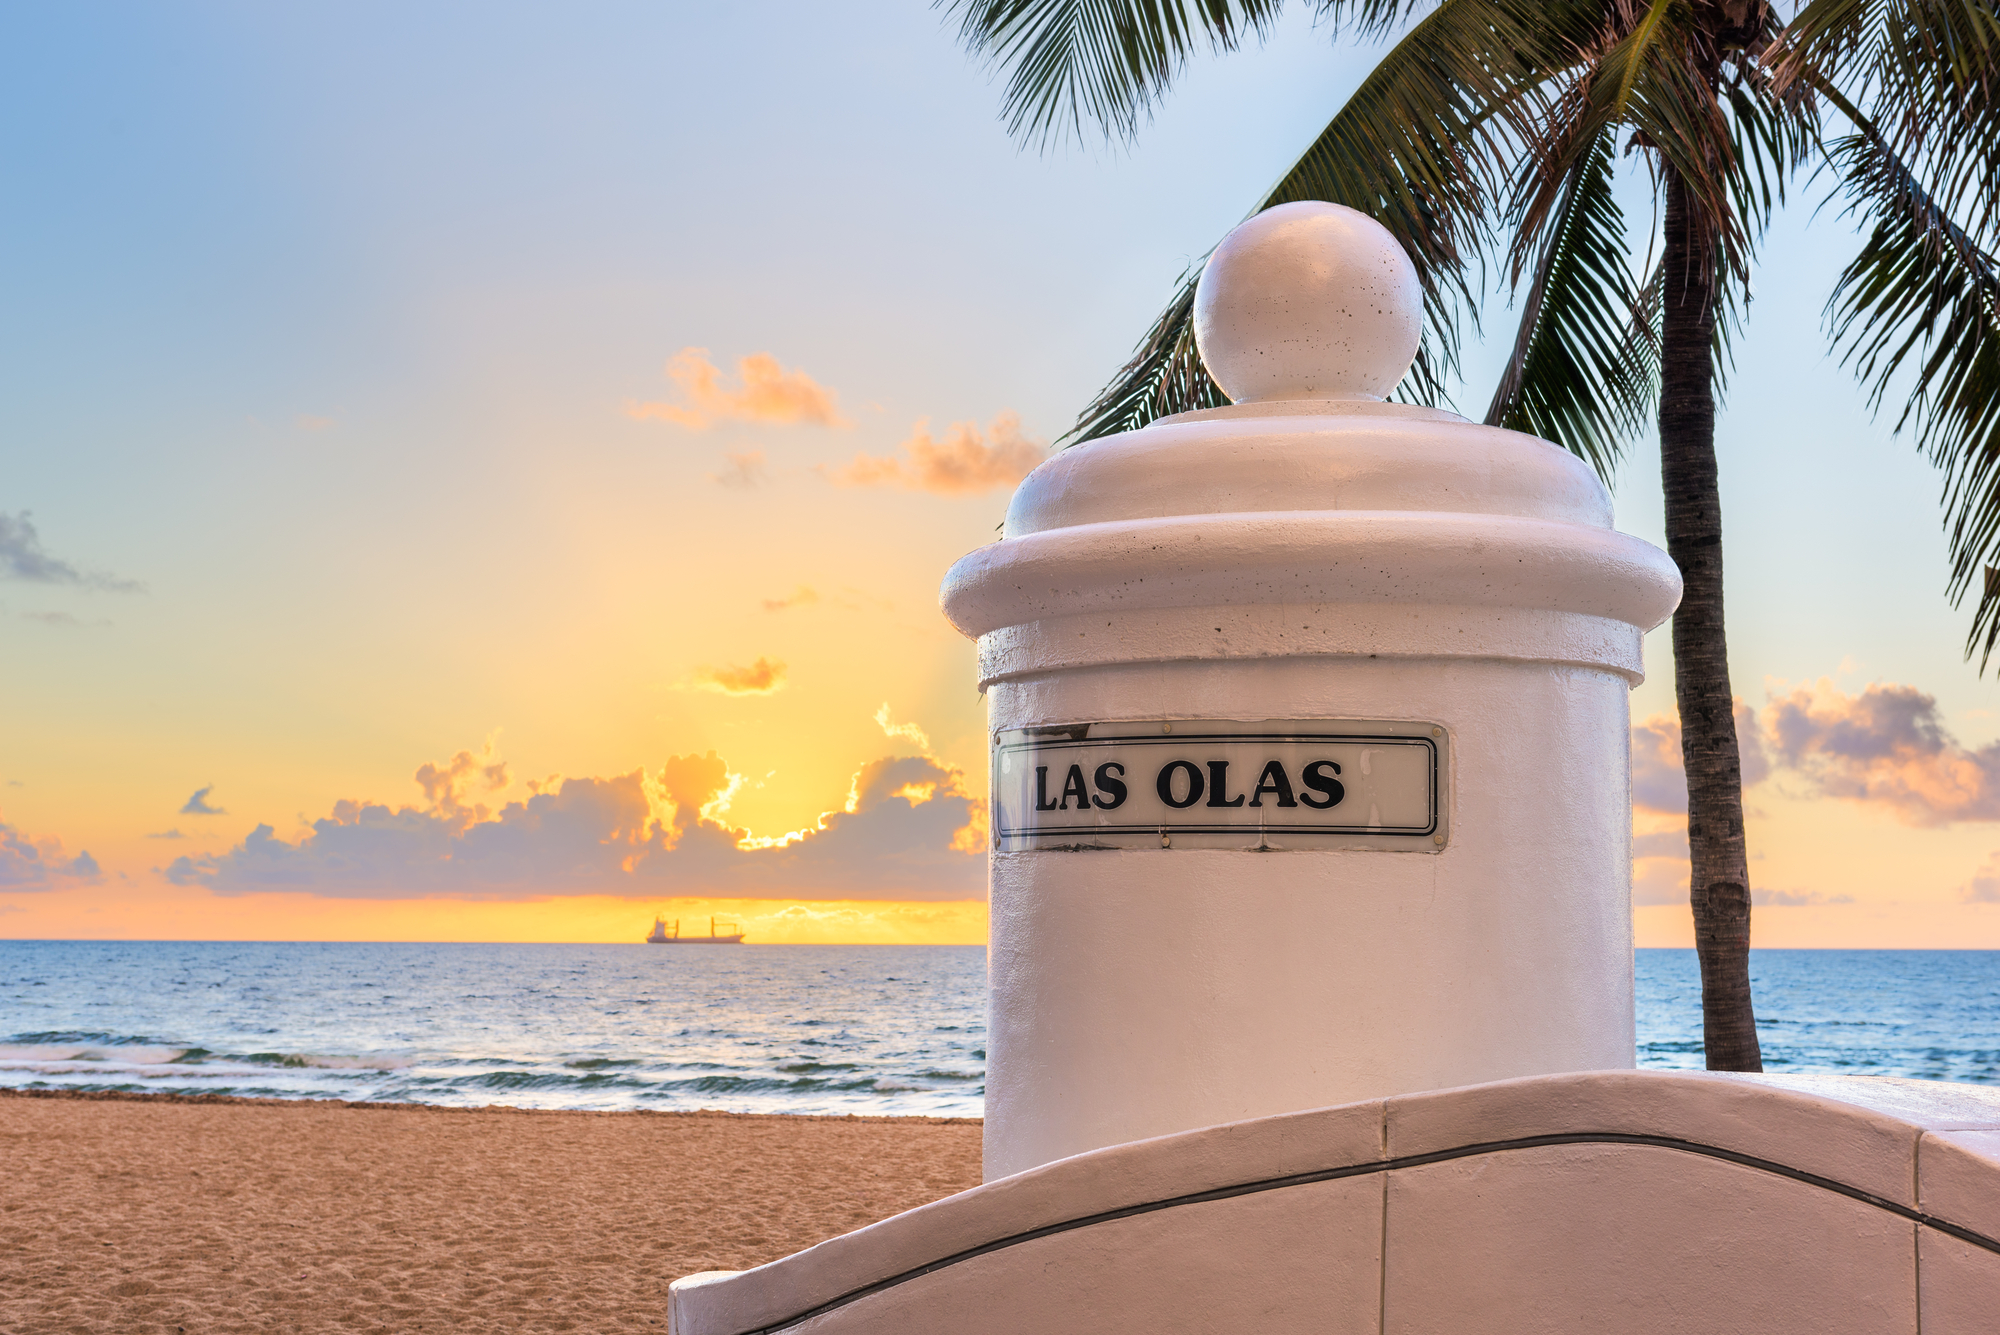 5 Fun Things to do in Fort Lauderdale This Fall 2020